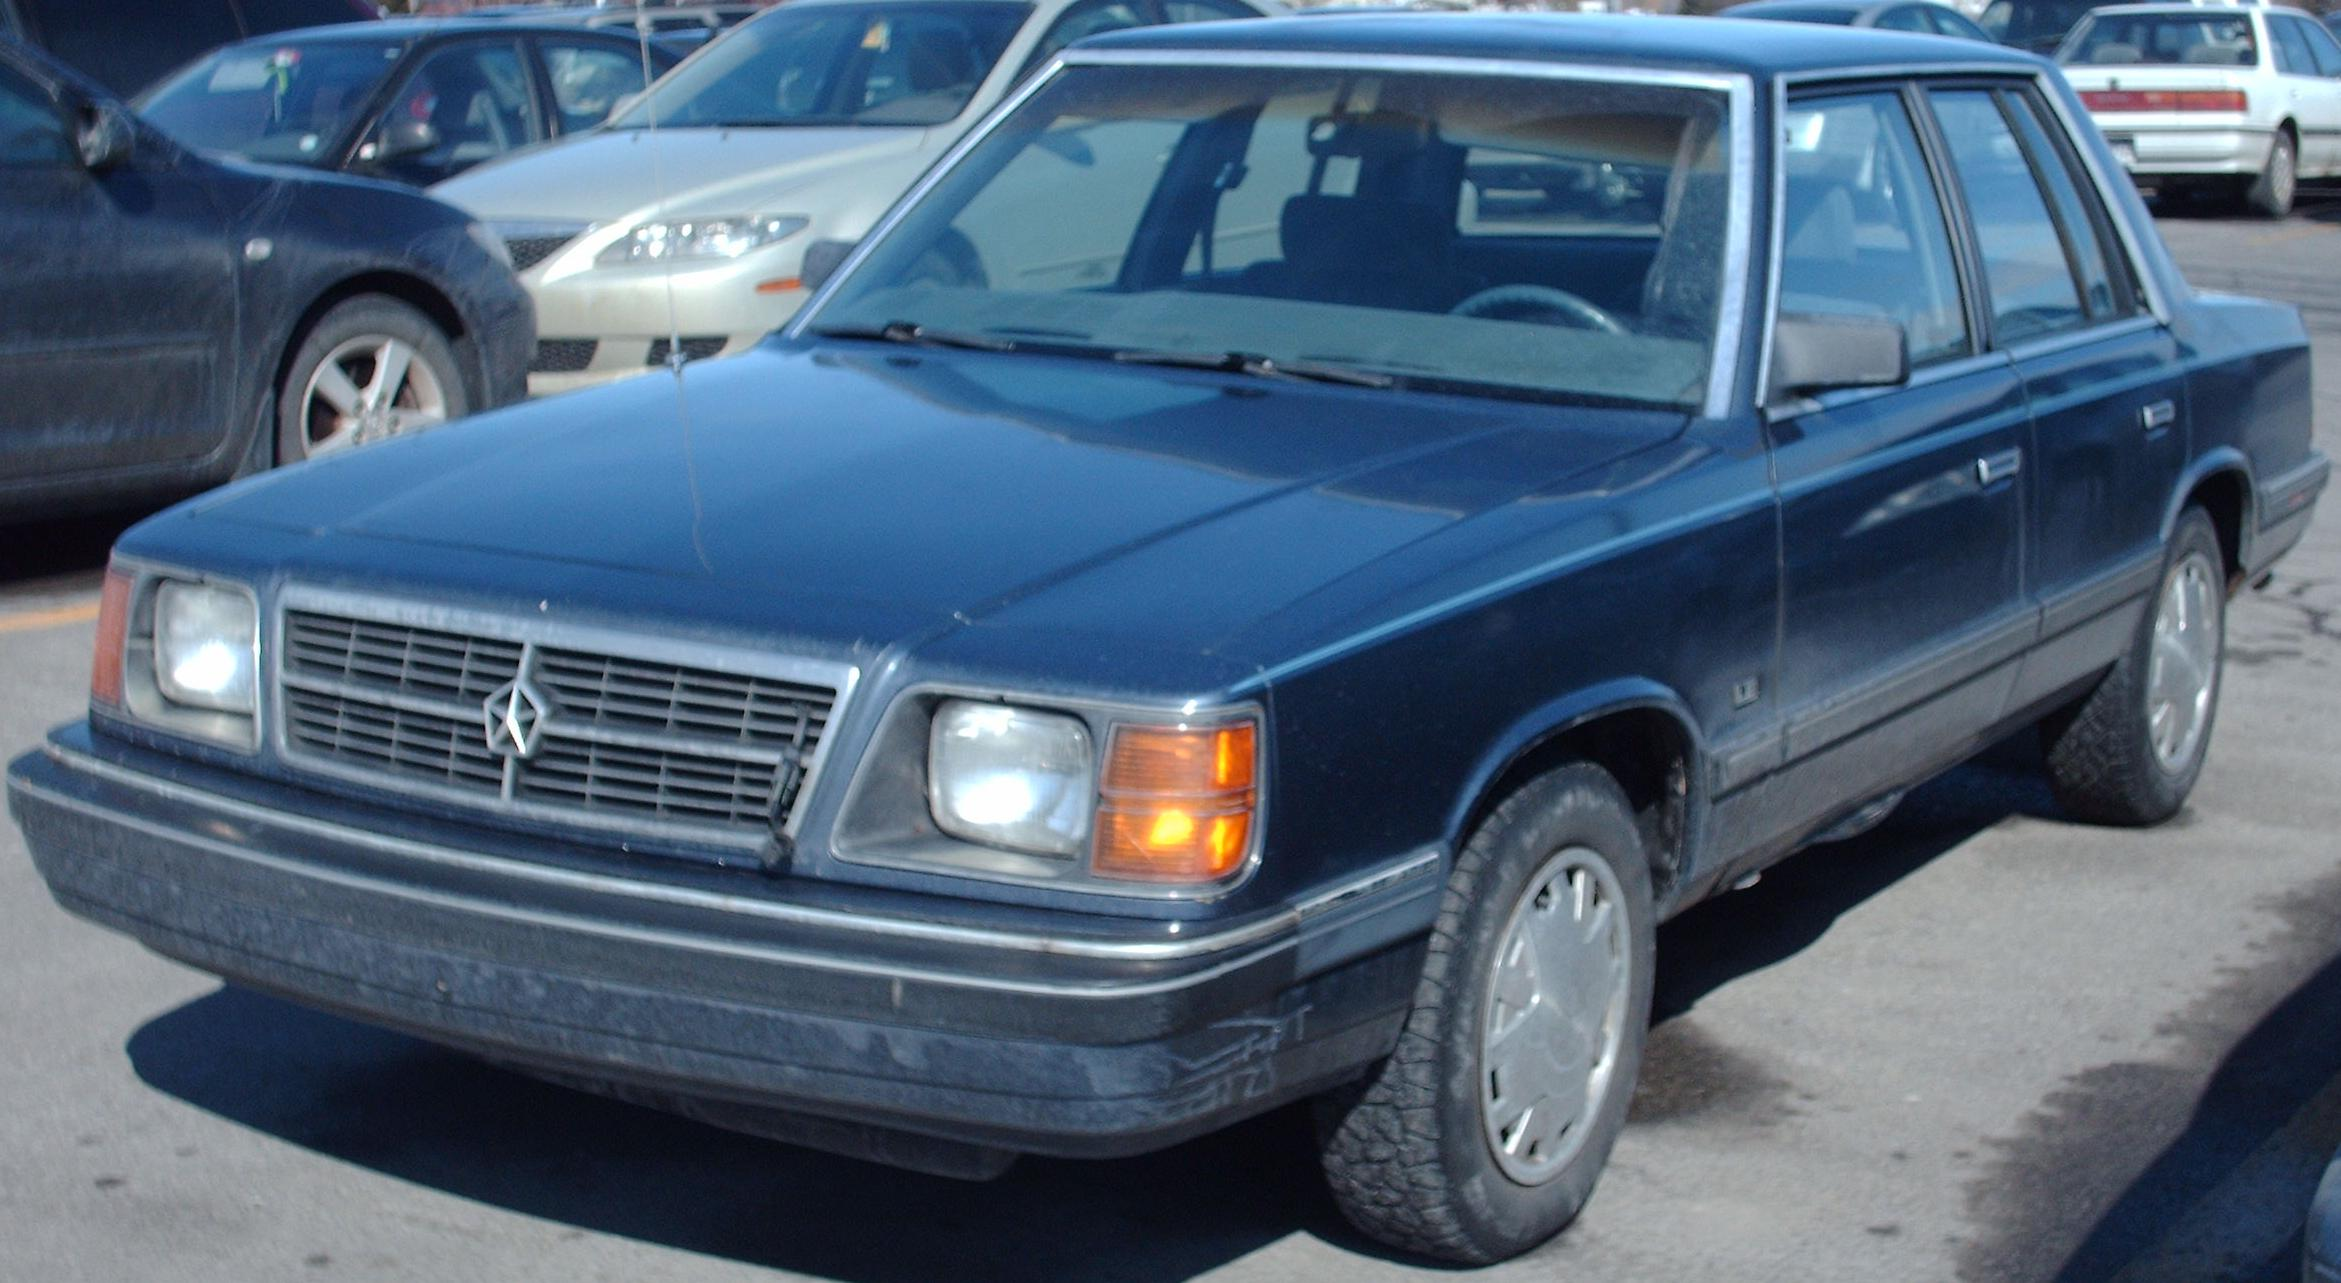 Dodge aries photo - 4